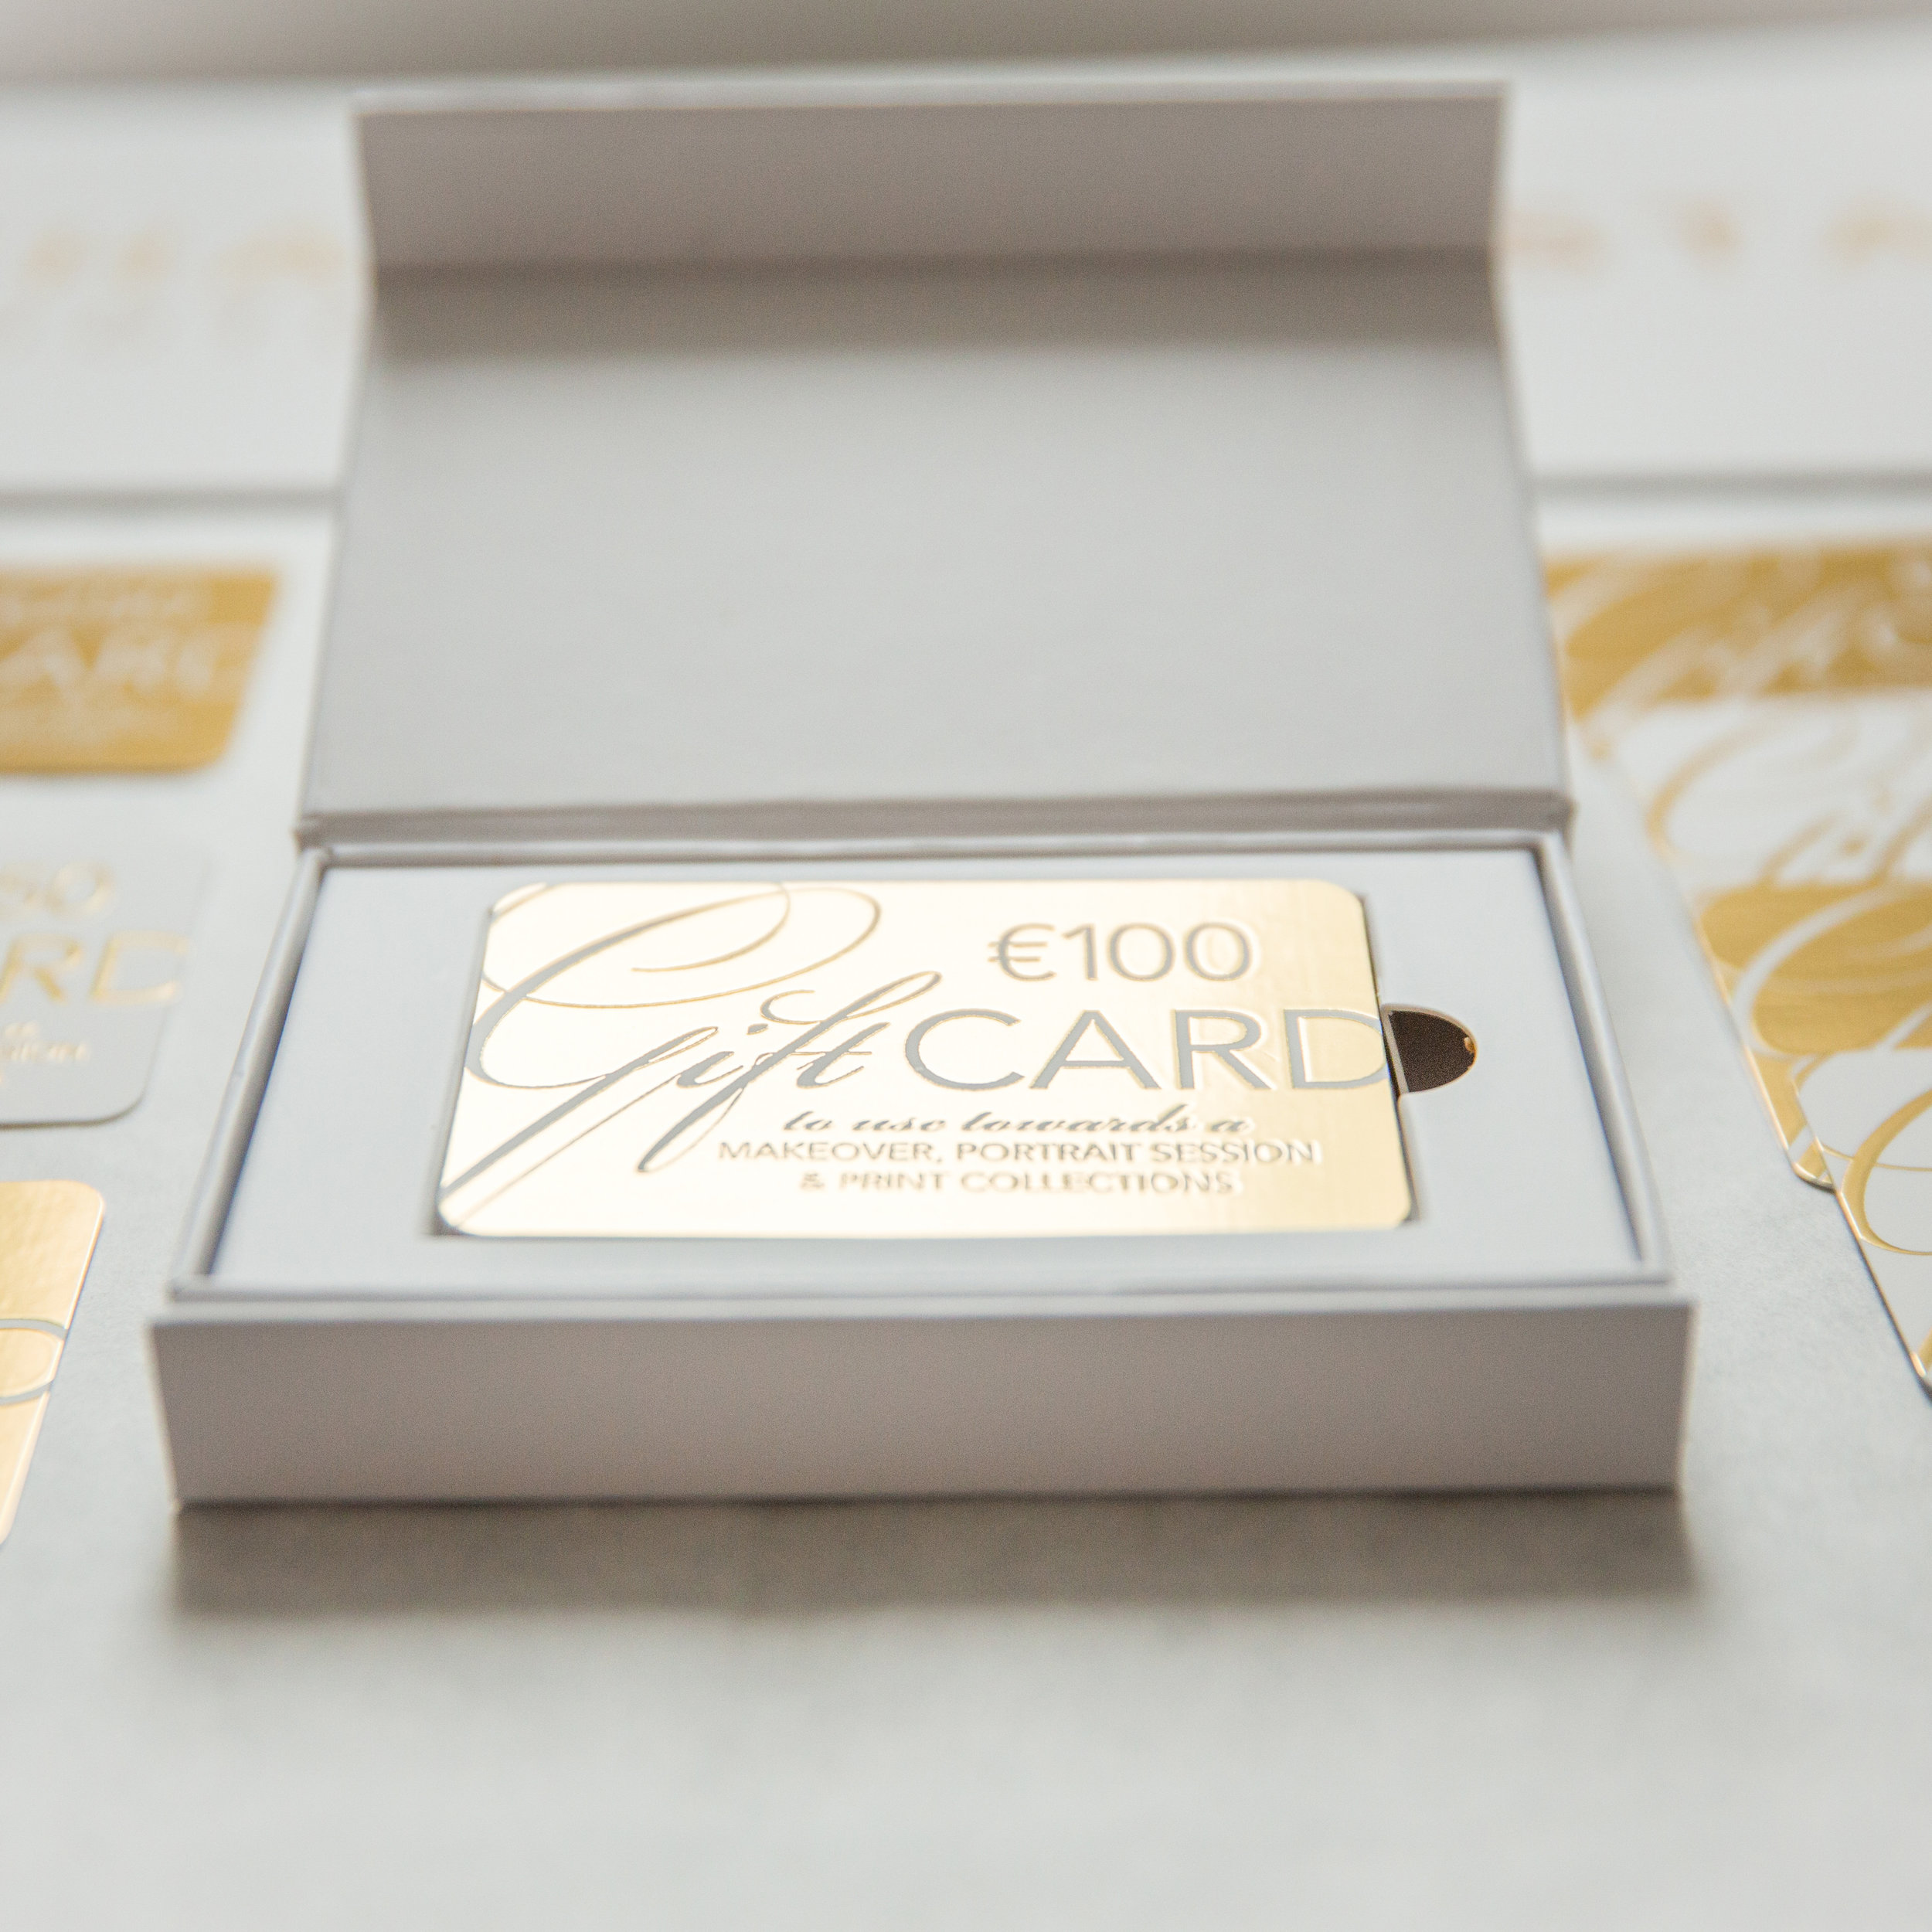 GOLDEN GIFT VOUCHER - You can also gift an elegant voucher that can be used against any type of photoshoot (Mother & Daughter, Family, Headshot, Luxury Glamour)